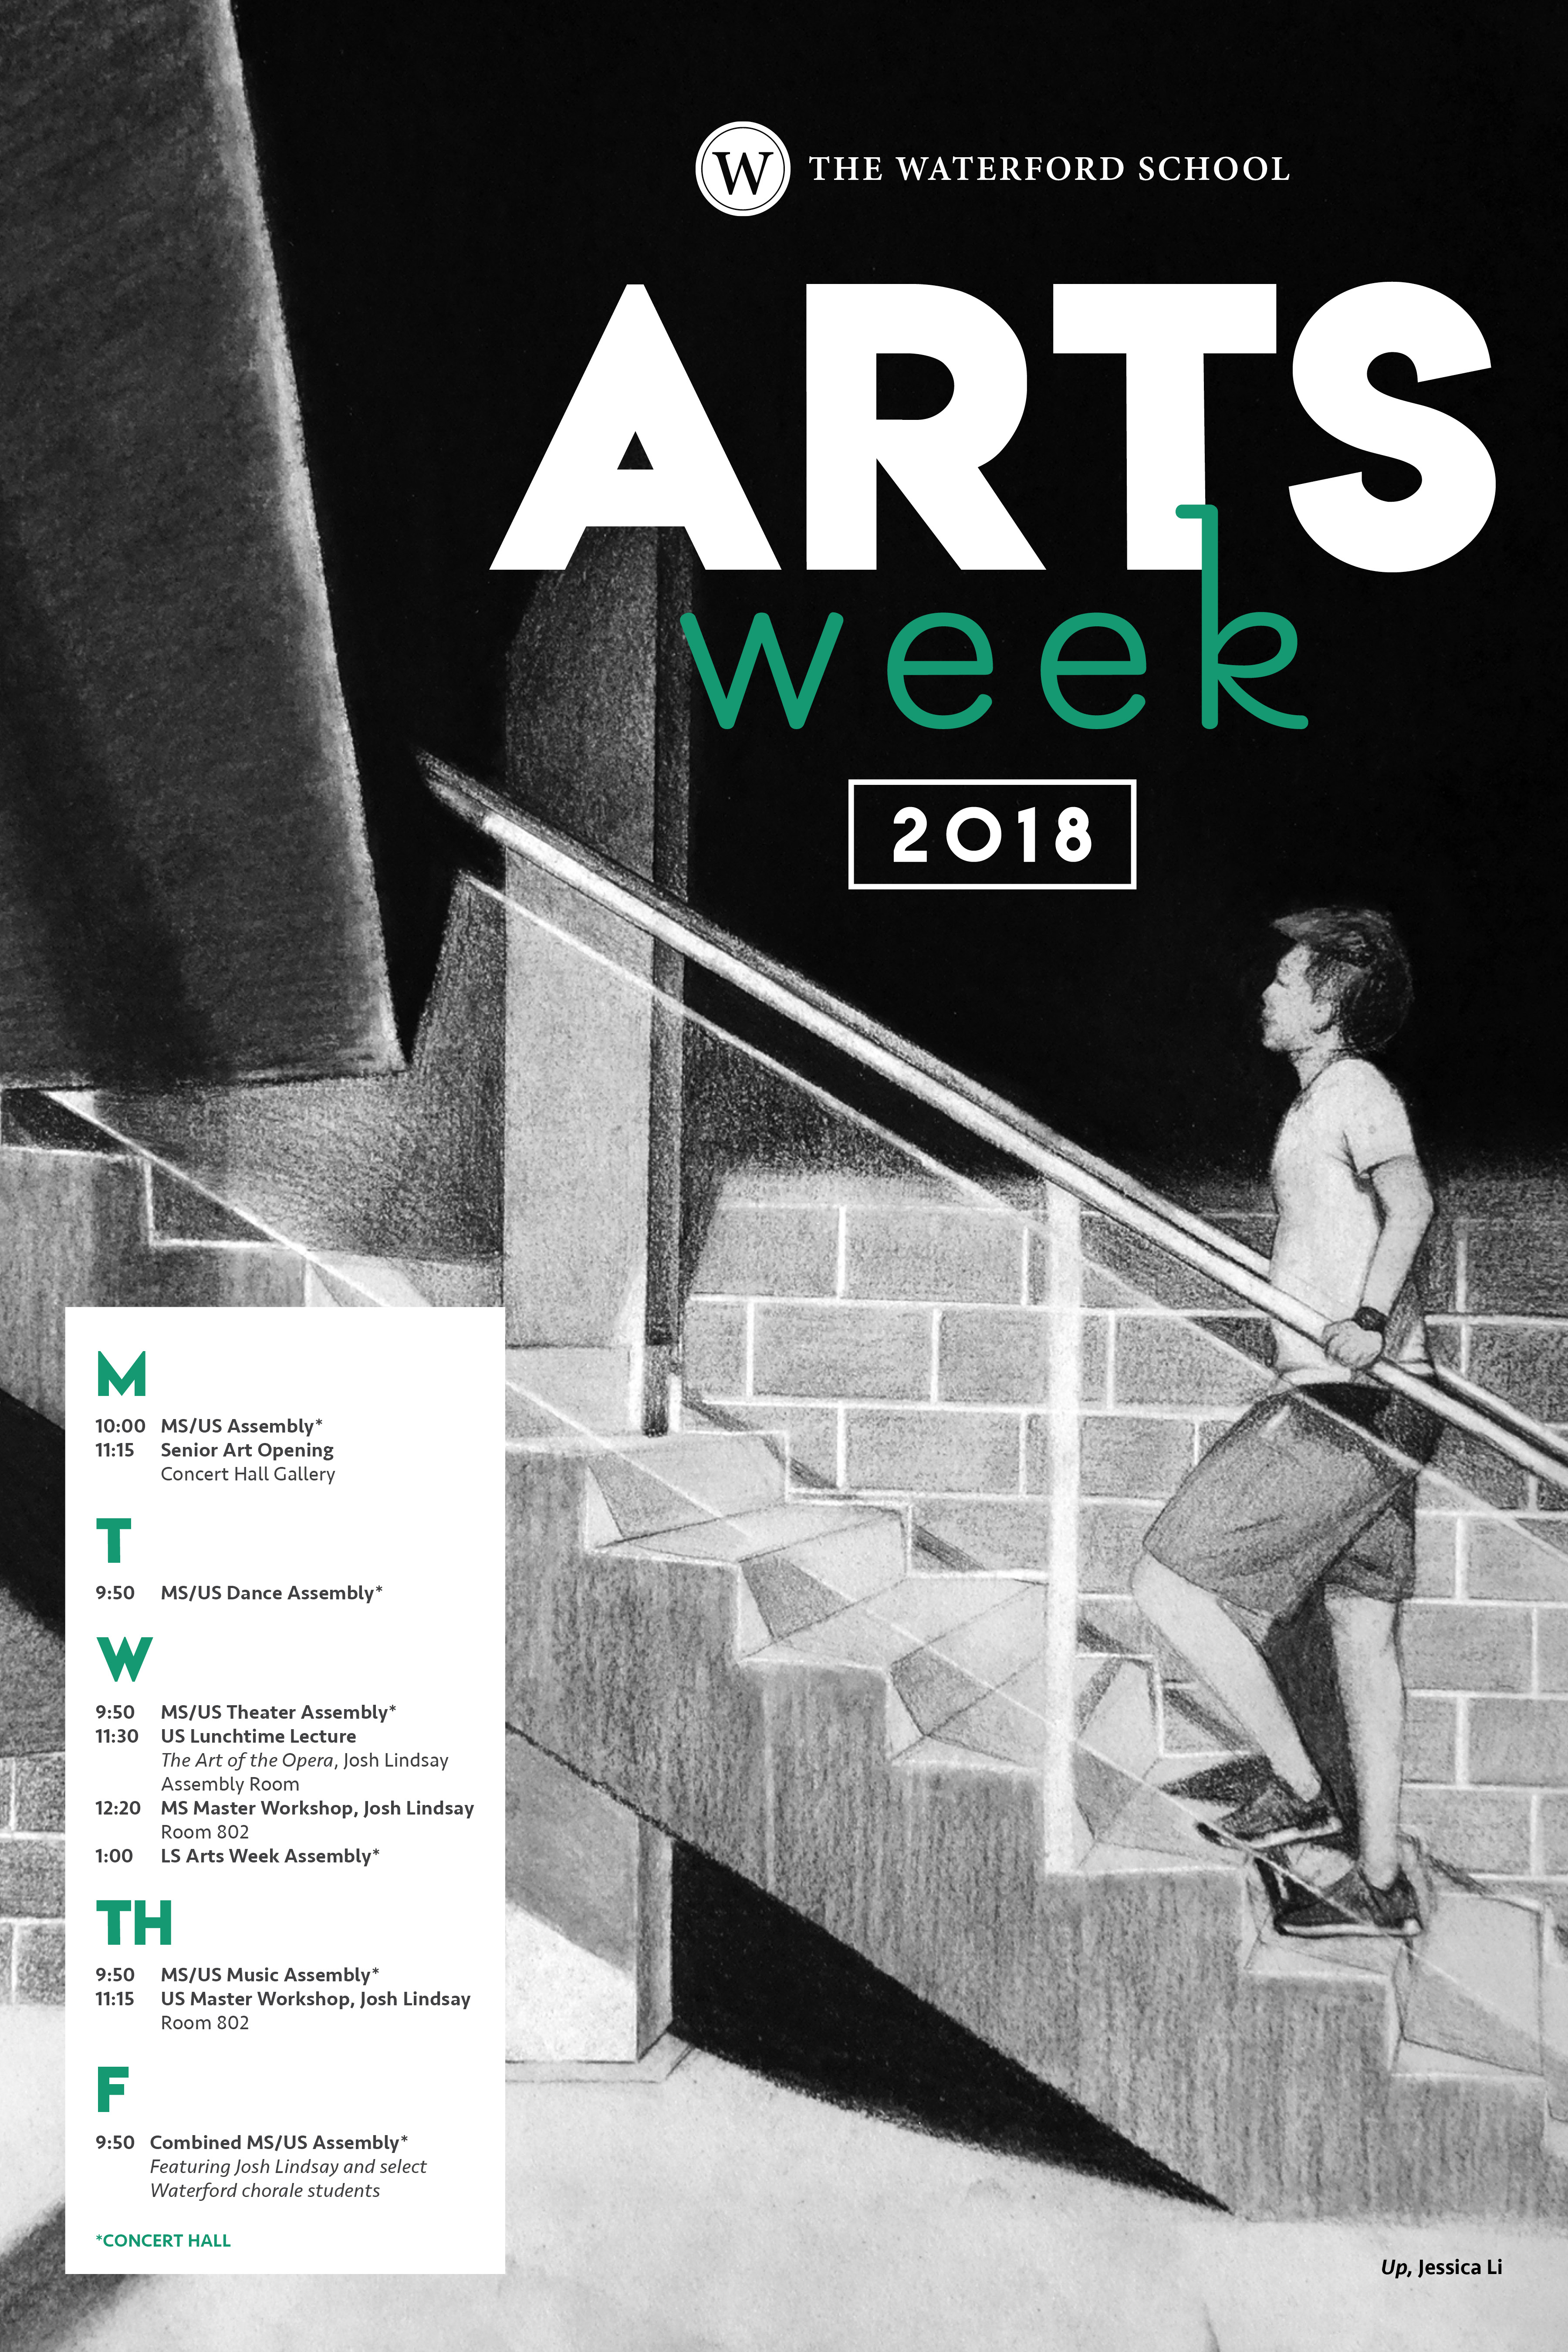 Waterford Arts Week 2018